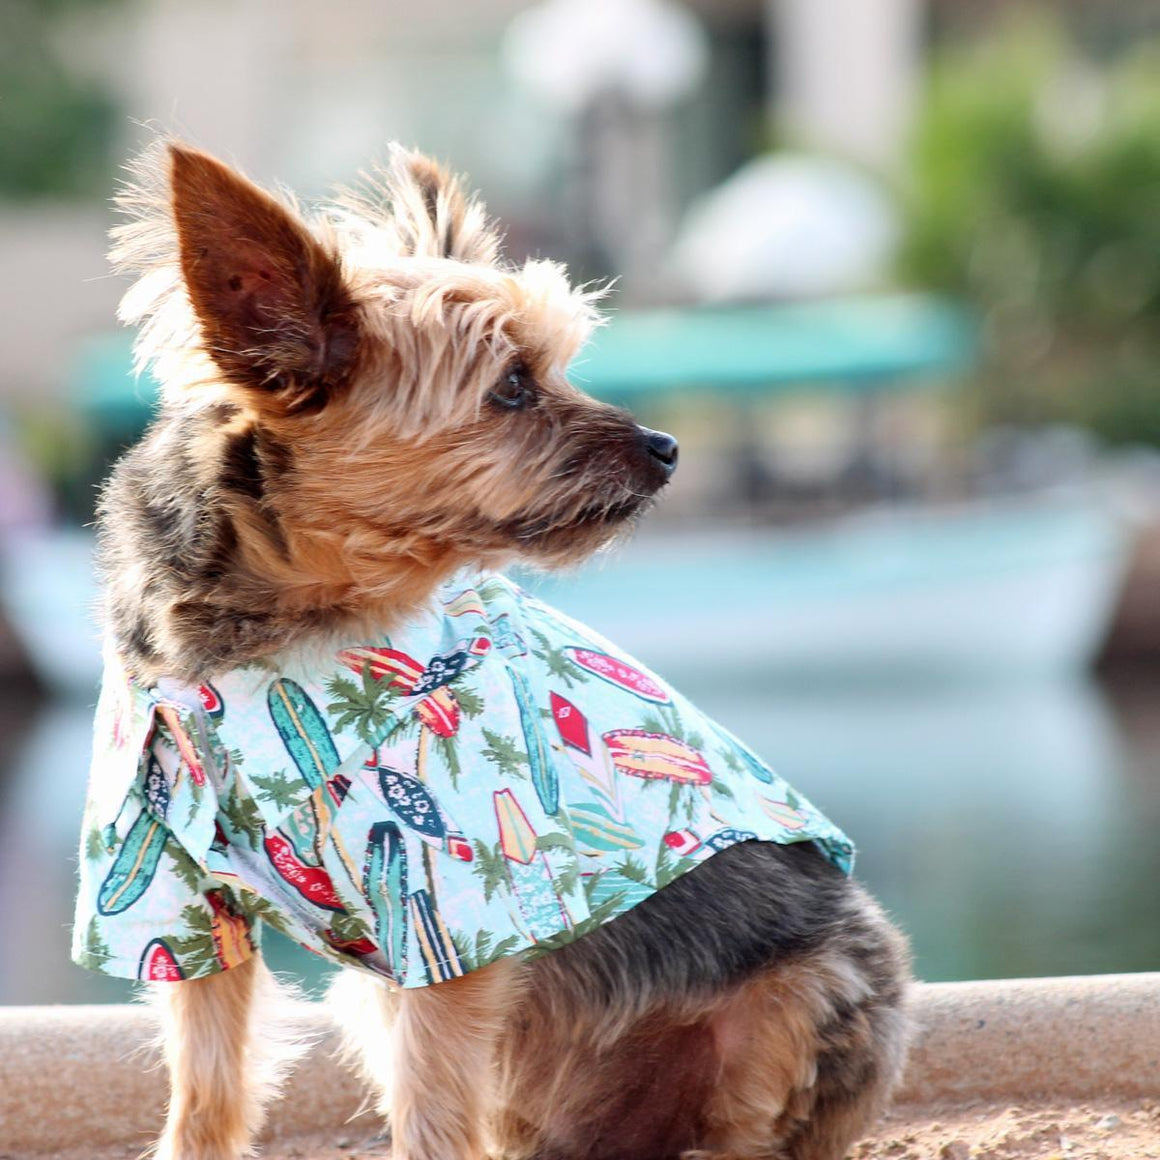 Doggie Design Hawaiian Camp Shirt - Surfboards and Palms Dog Shirt-Le Pup Pet Supplies and Grooming